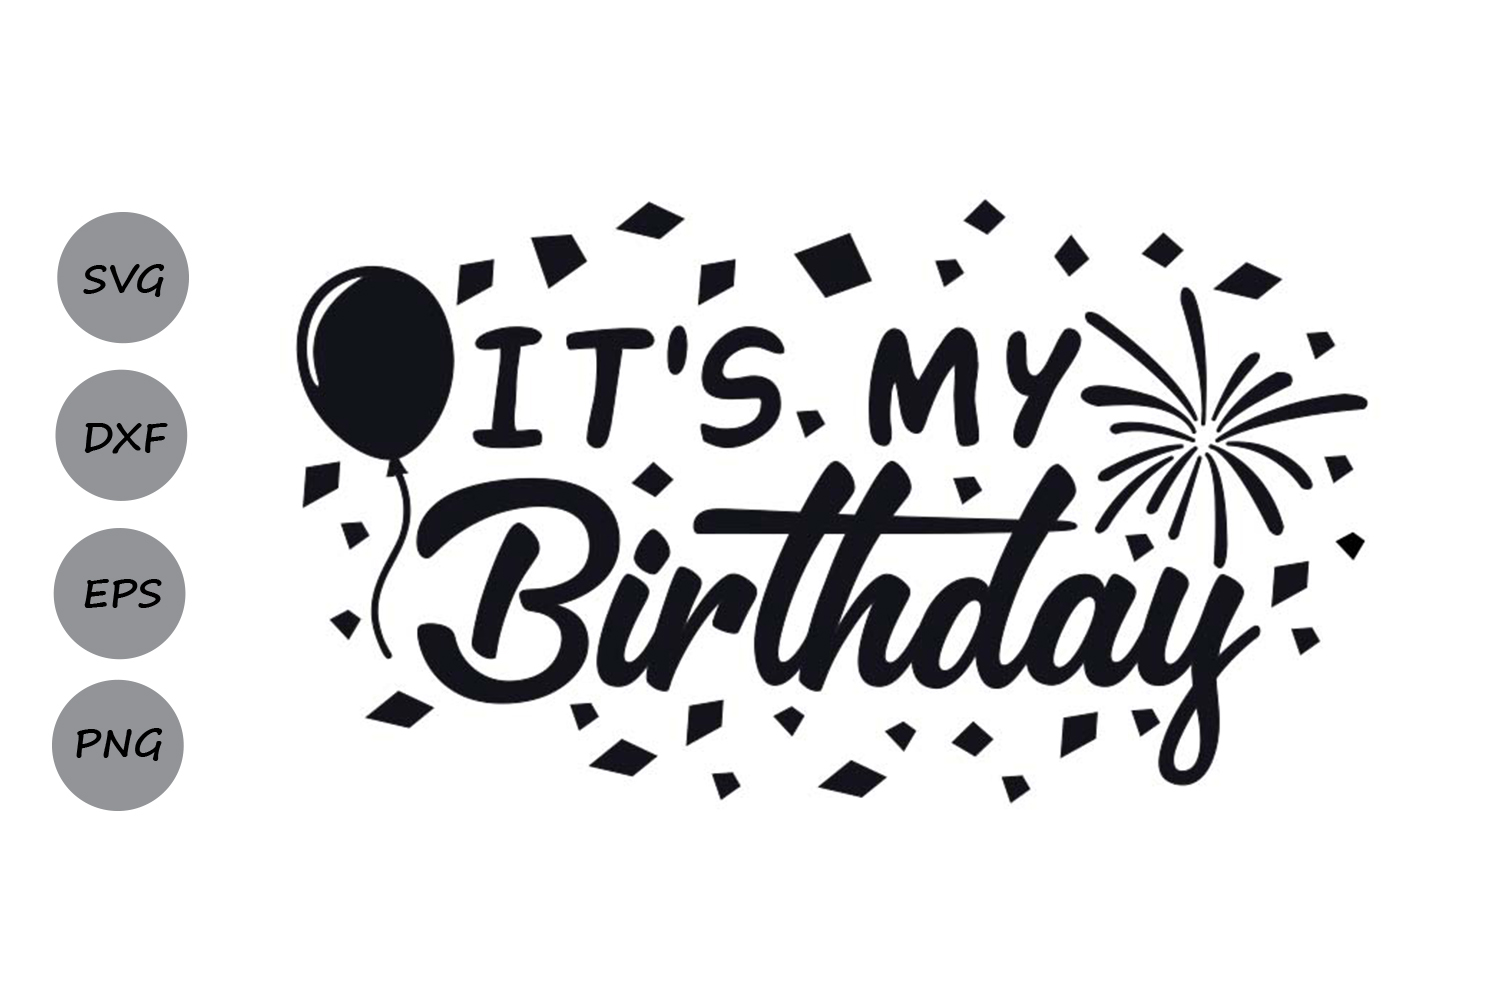 It's my birthday svg, birthday svg, birthday party svg. example image 1